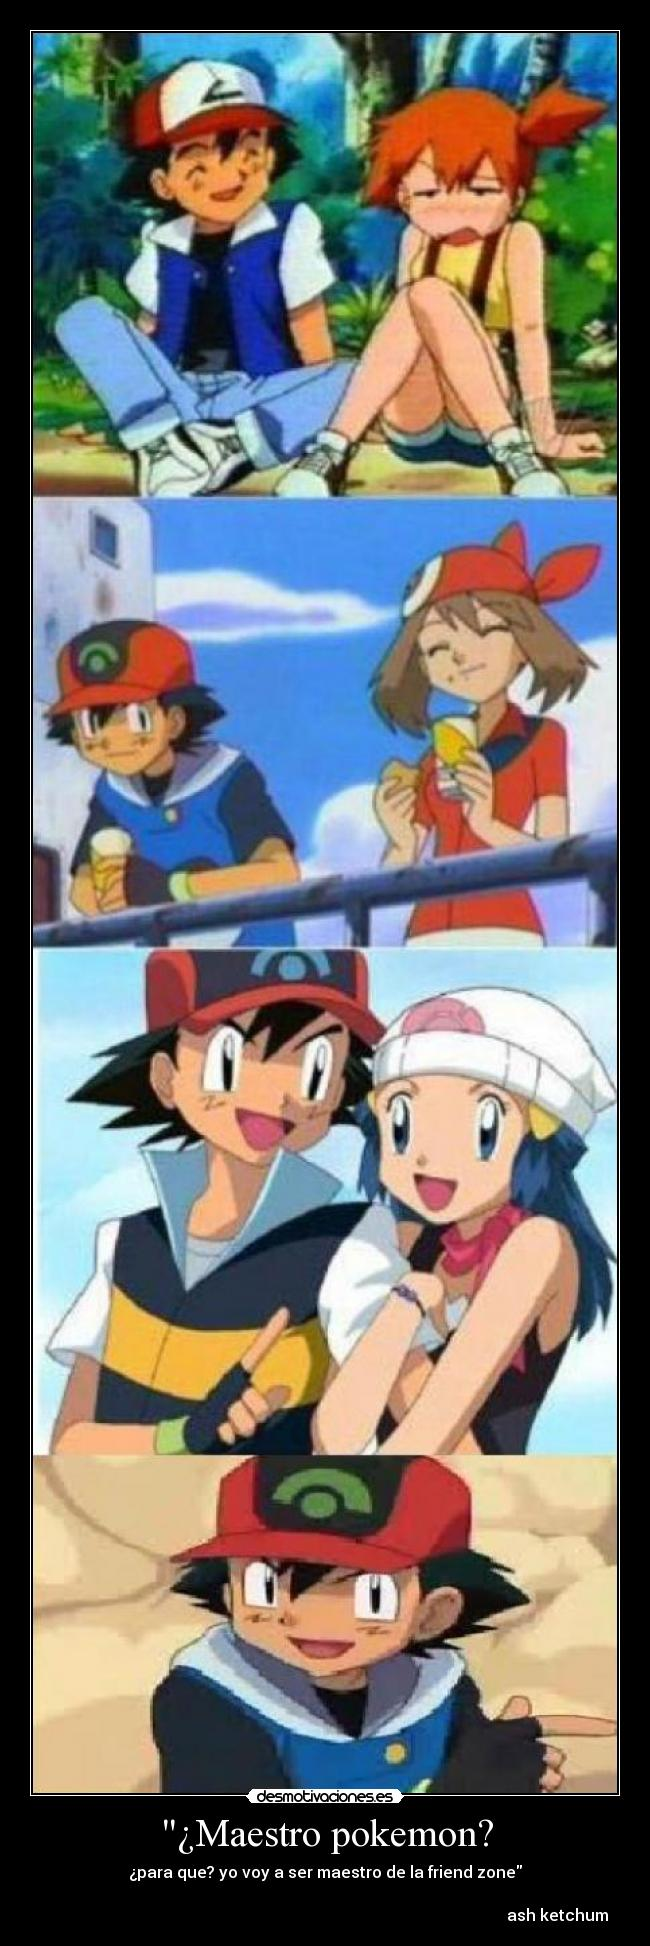 Have thought pokemon may dawn misty and serena porn something